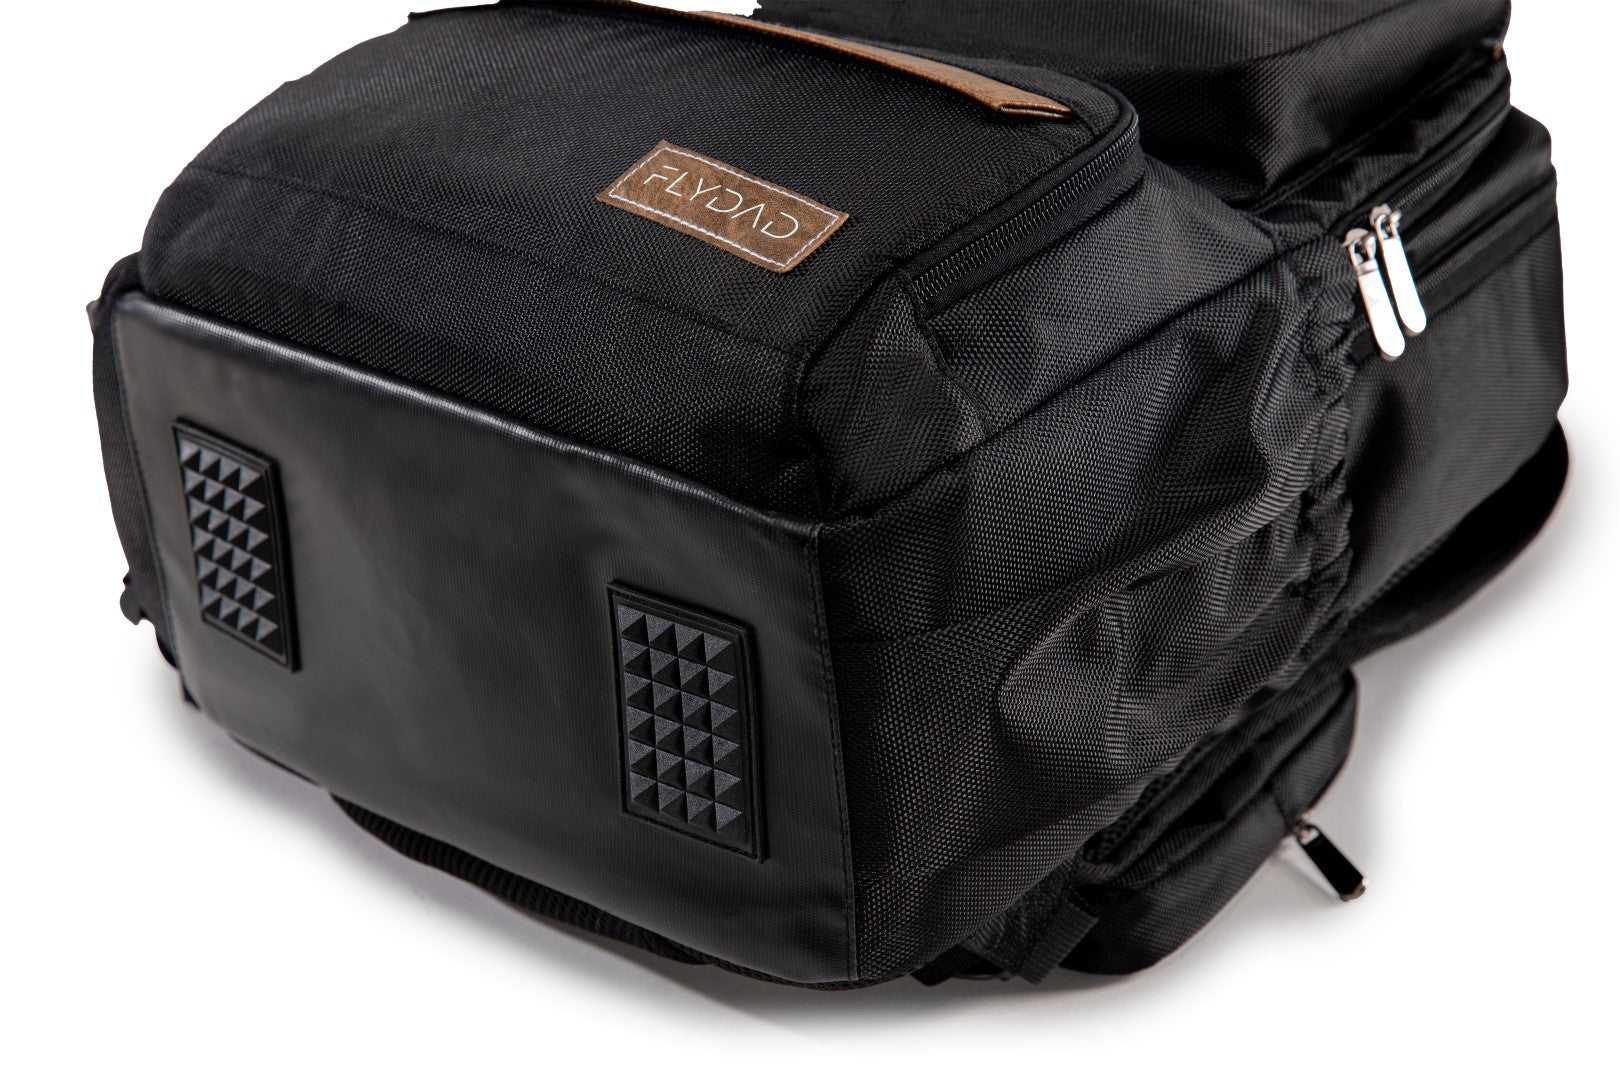 FlyDad Men's Diaper Bag - Coming Soon!